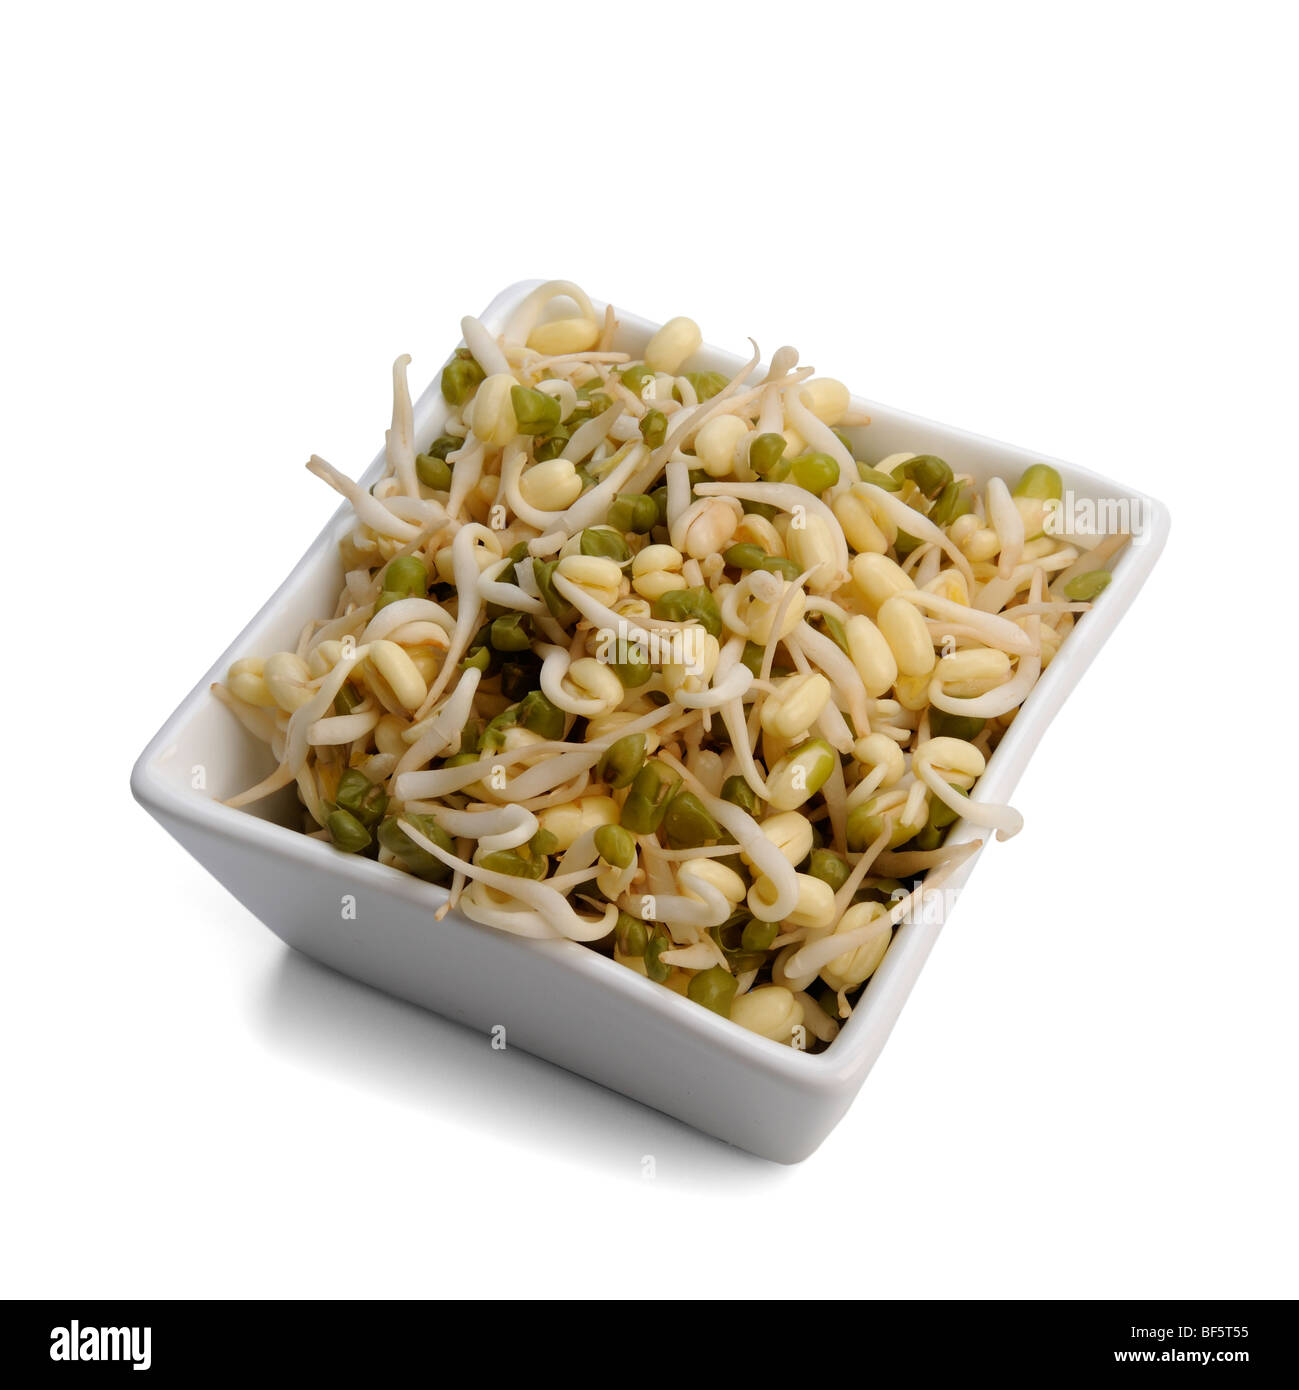 Bean Sprouts in dish - Stock Image